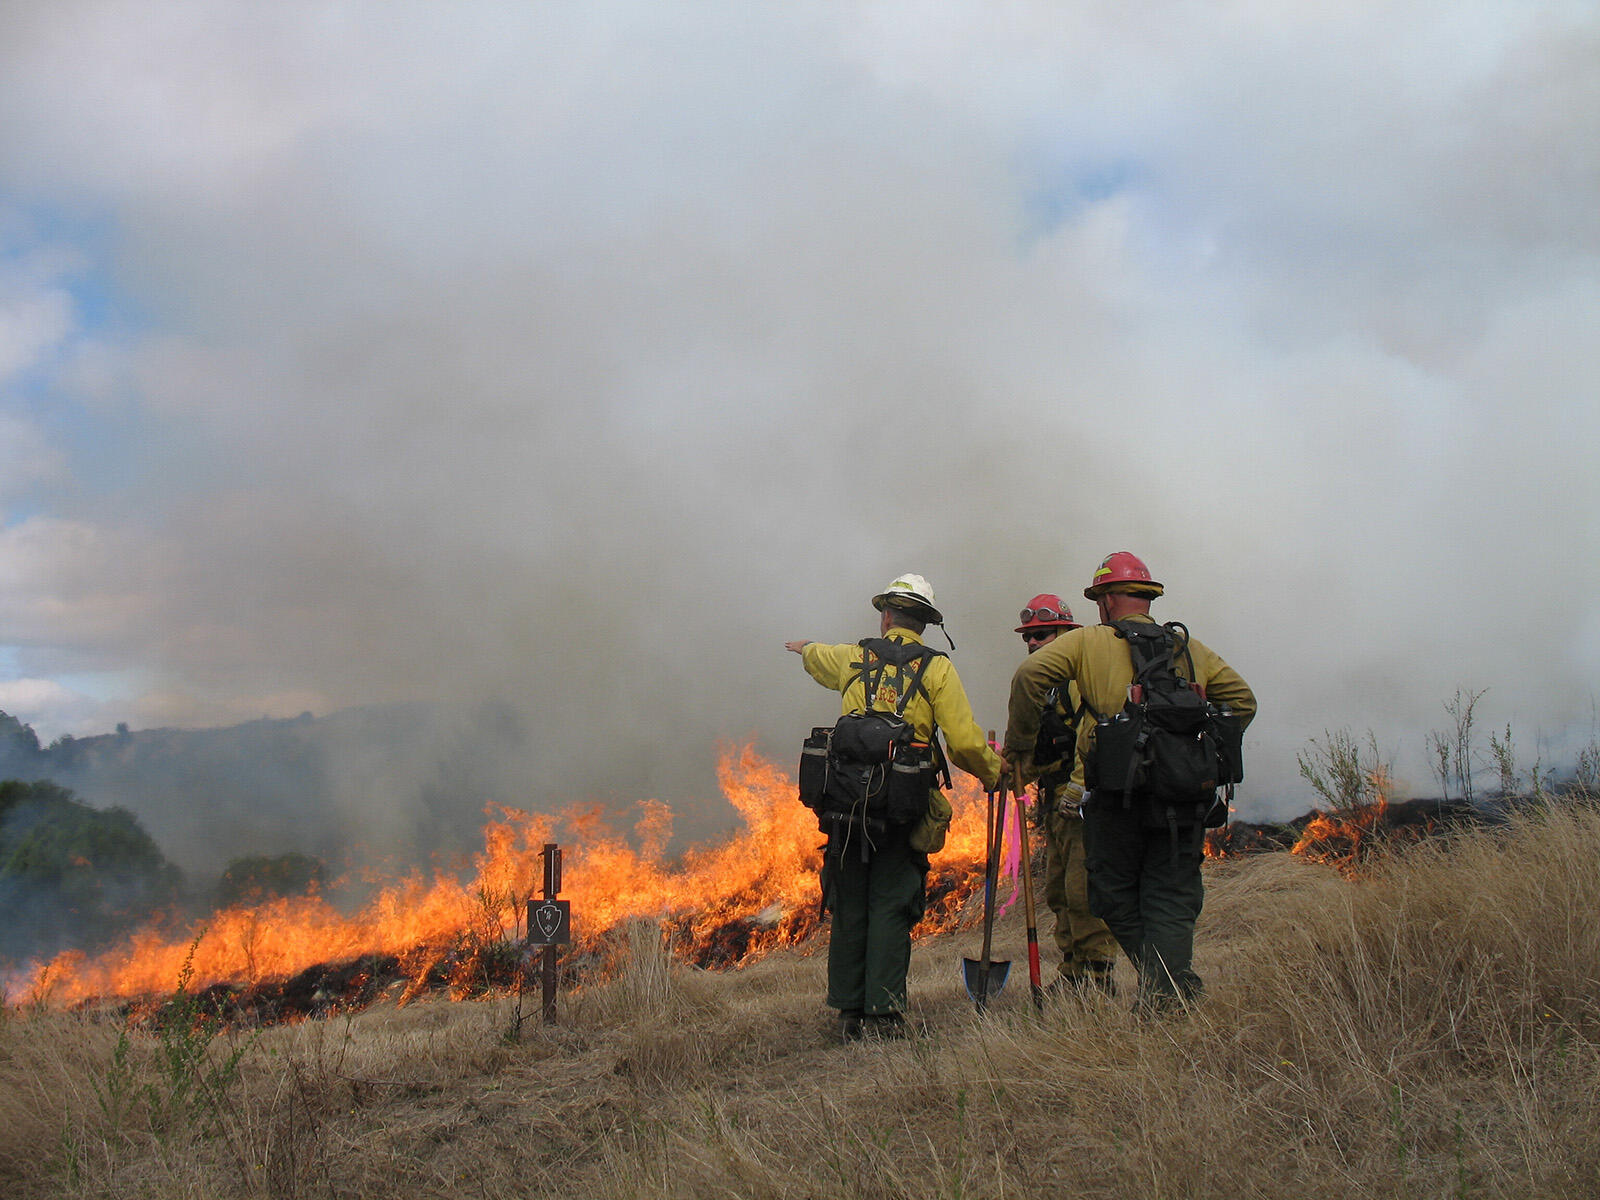 Uniformed firefighters gesture to each other as a prescribed fire burns on the grassy landscape.